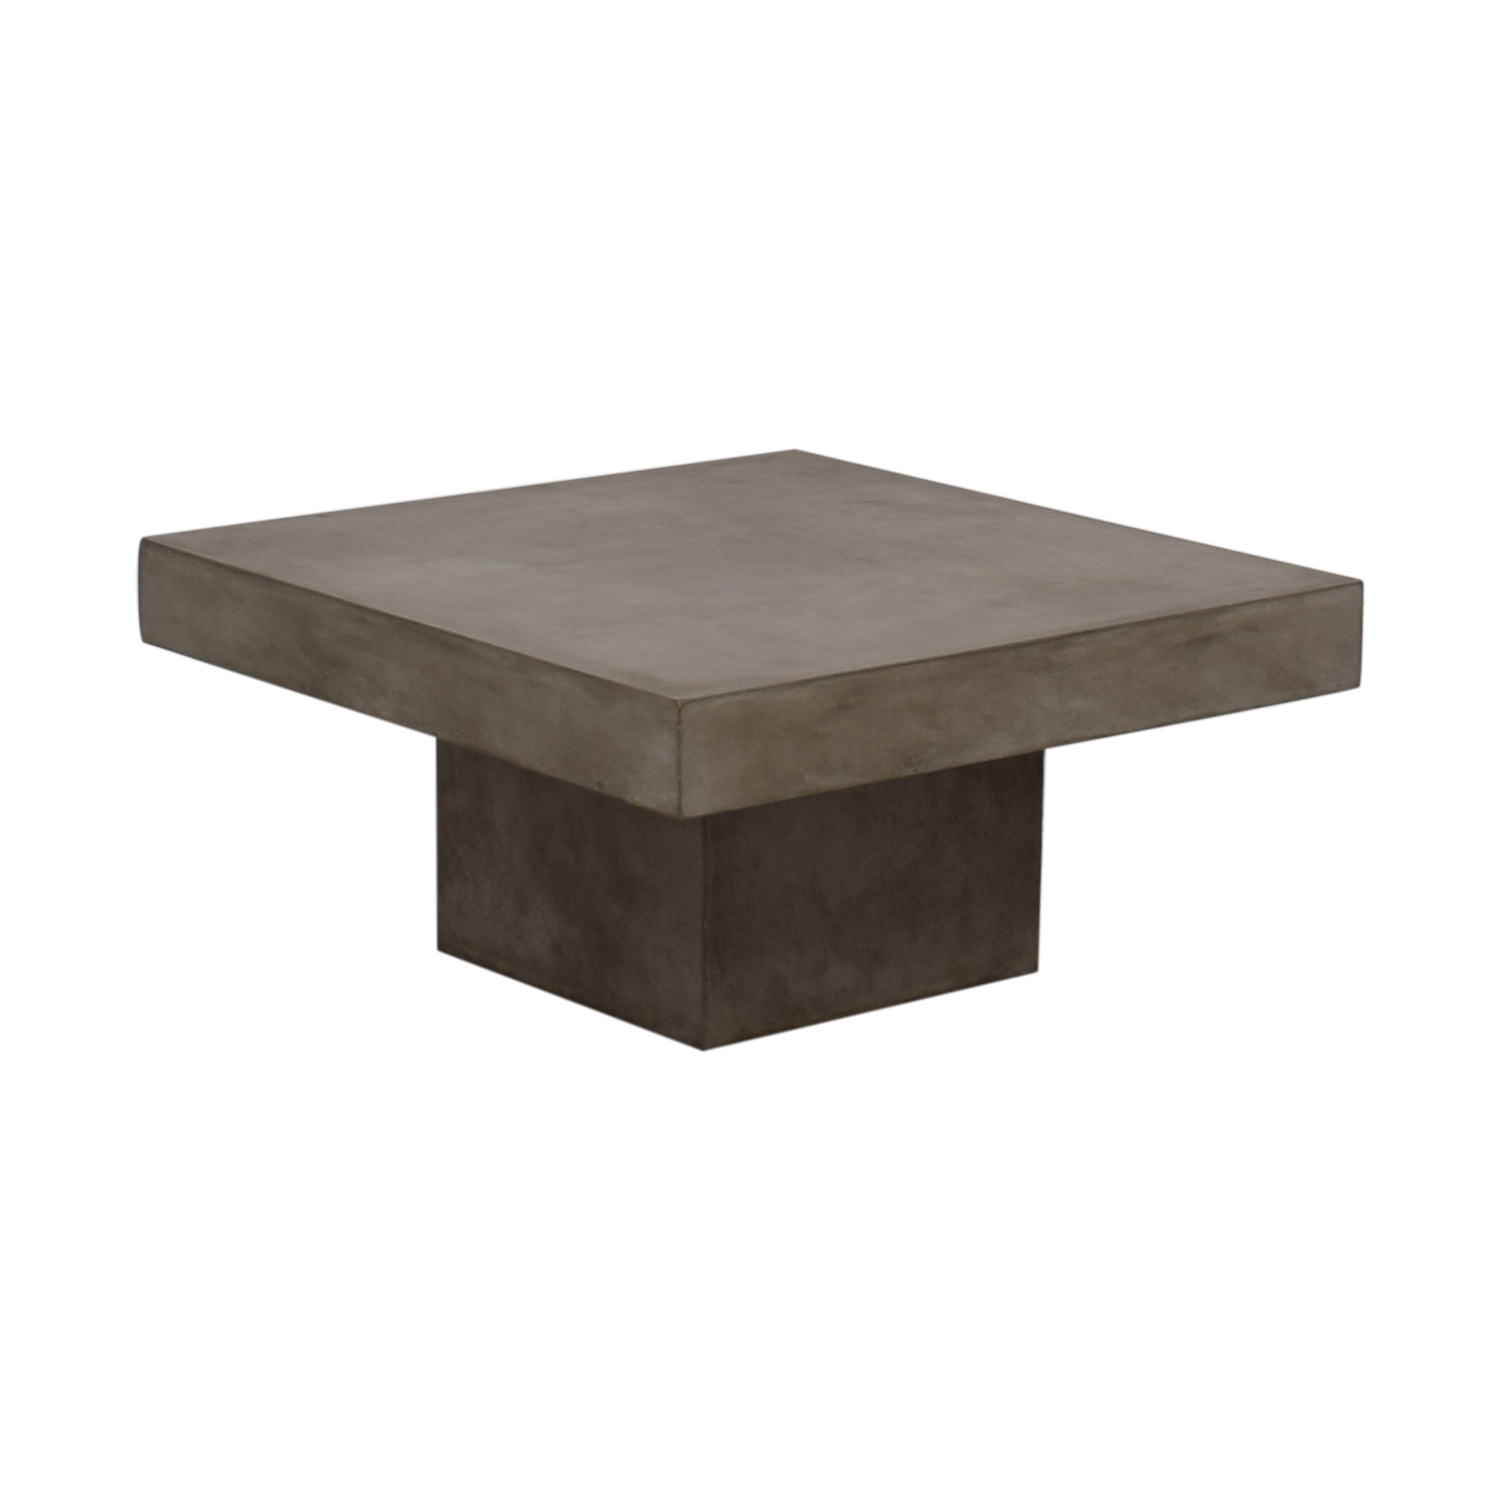 CB2 CB2 Element Cement Coffee Table for sale